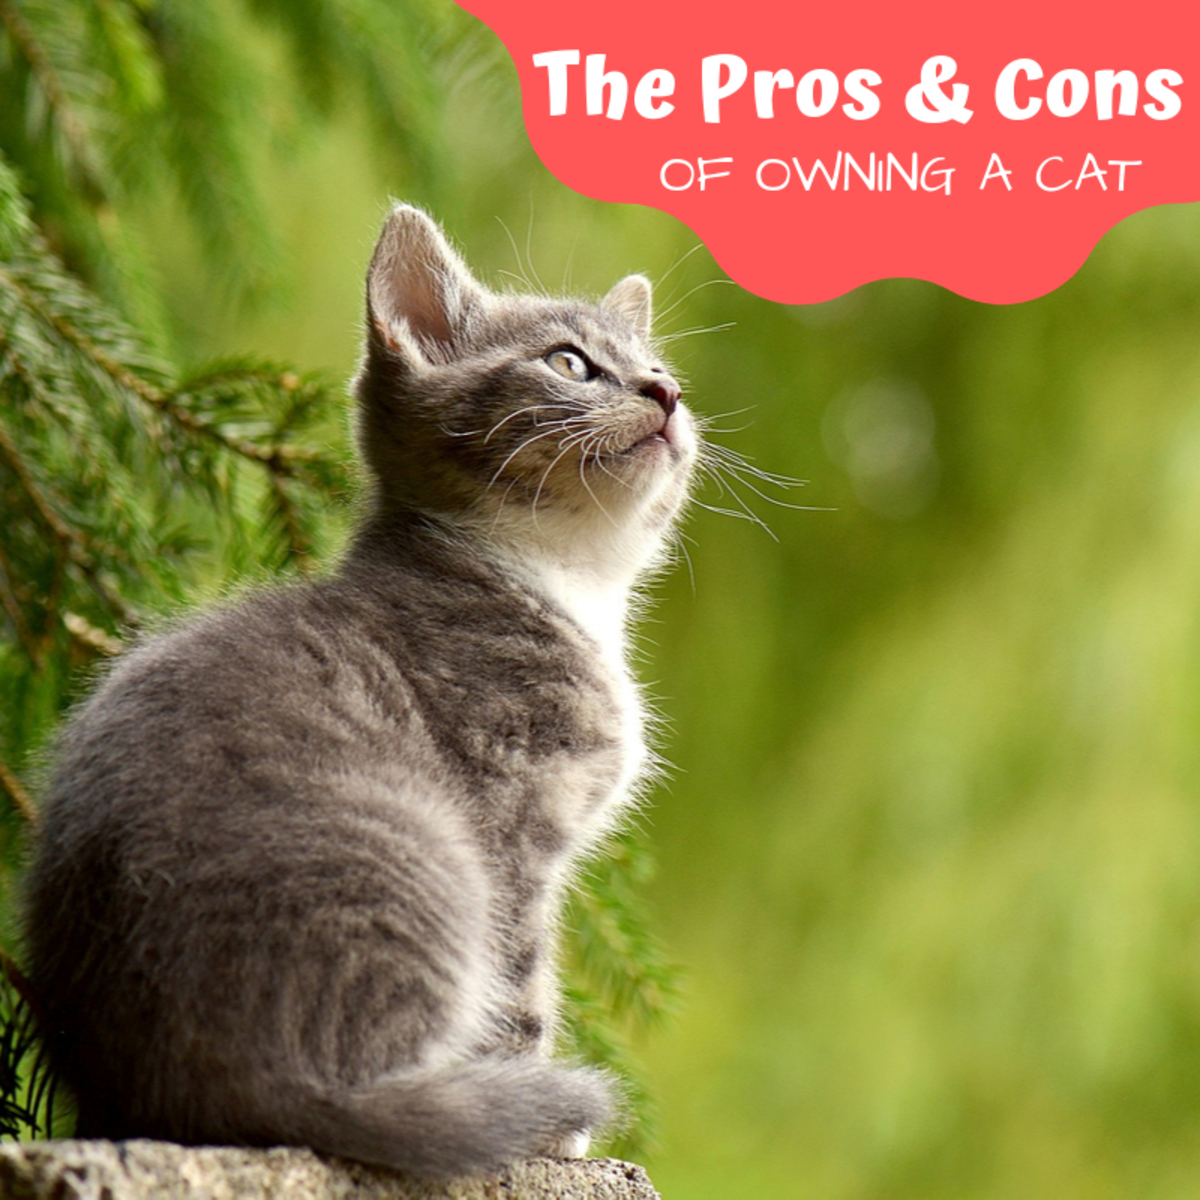 It's not all soft fur and soothing purs—learn about the some of the less pleasant aspects of cat parenthood before deciding whether to adopt!